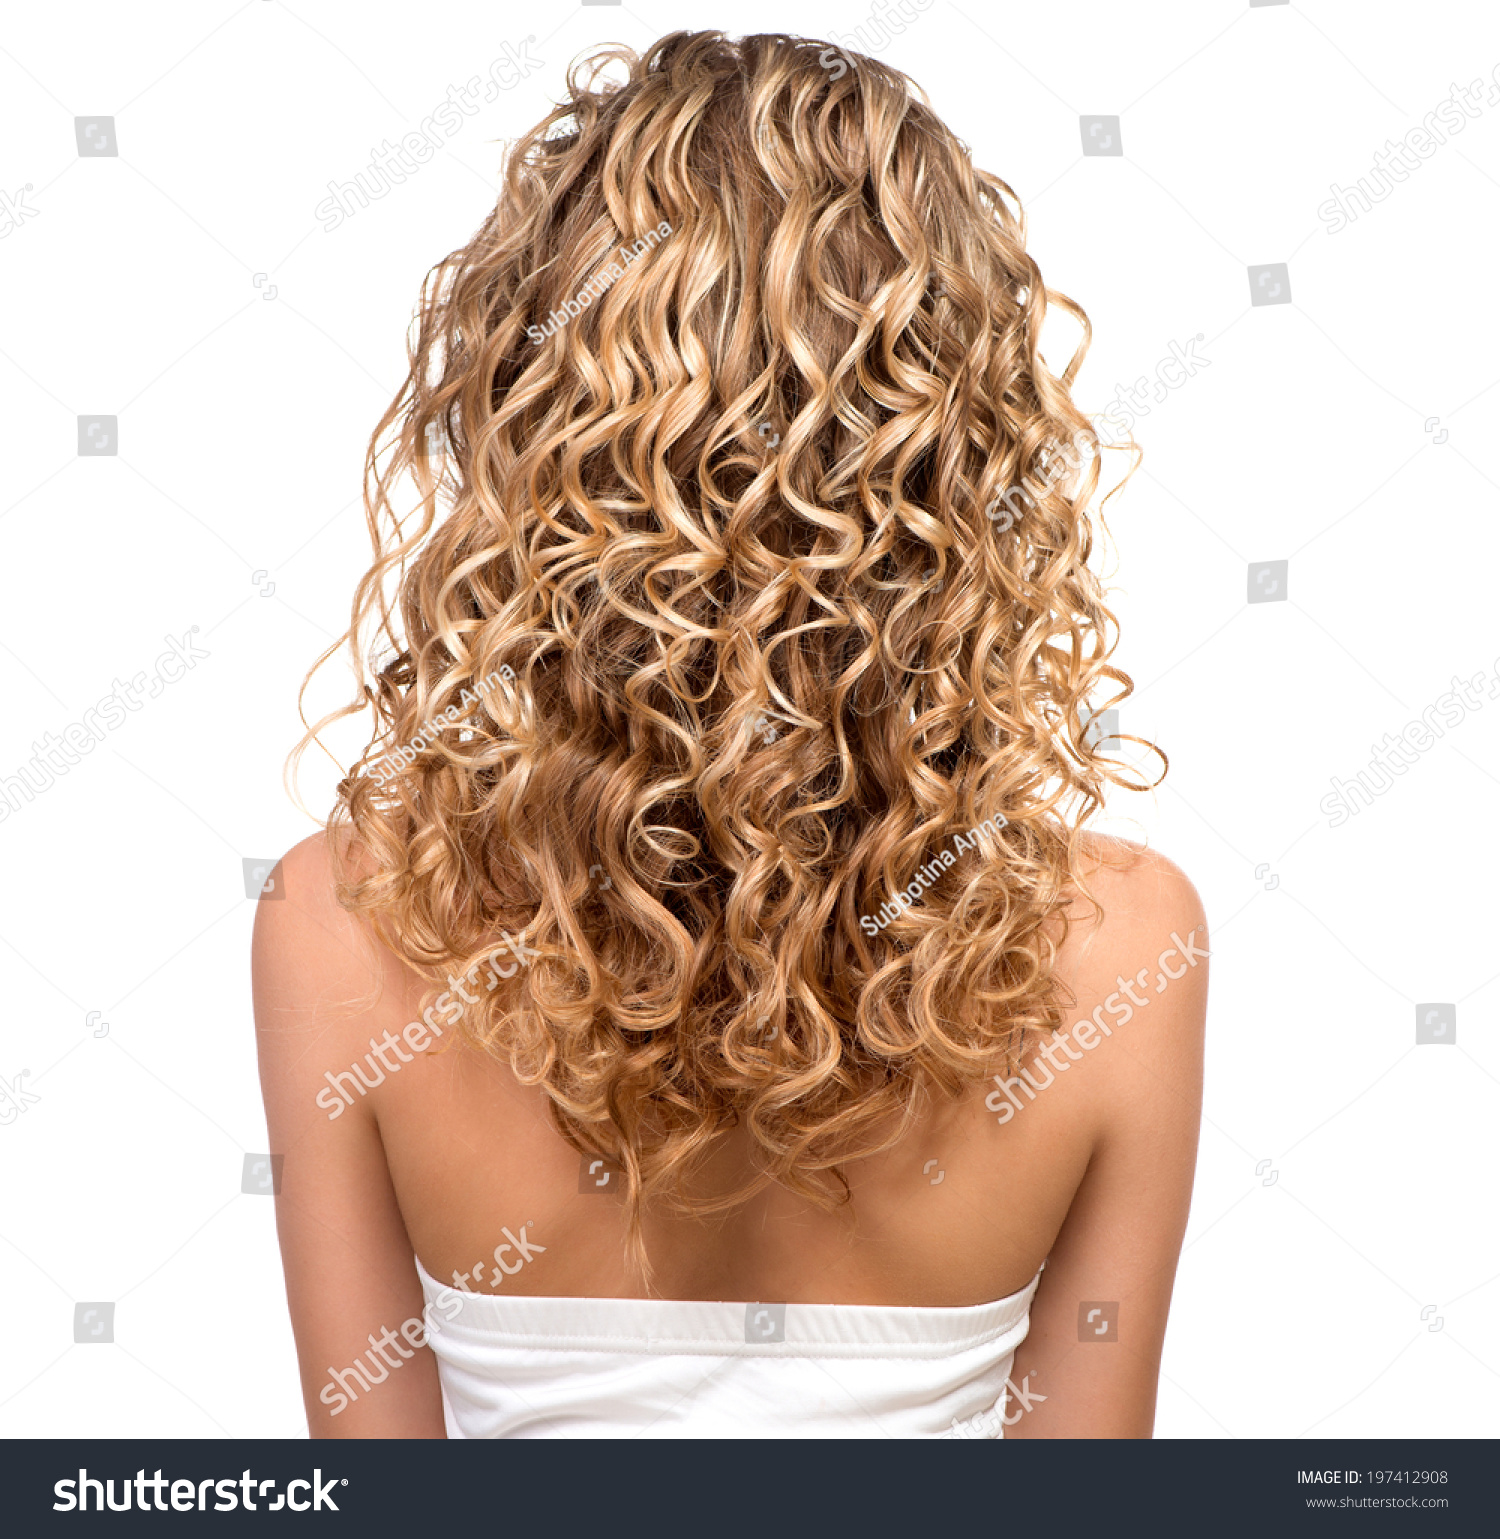 Leichte Wellen Mit Glätteisen Kurze Haare Beauty Girl Blonde Curly Hair Healthy Stock Photo